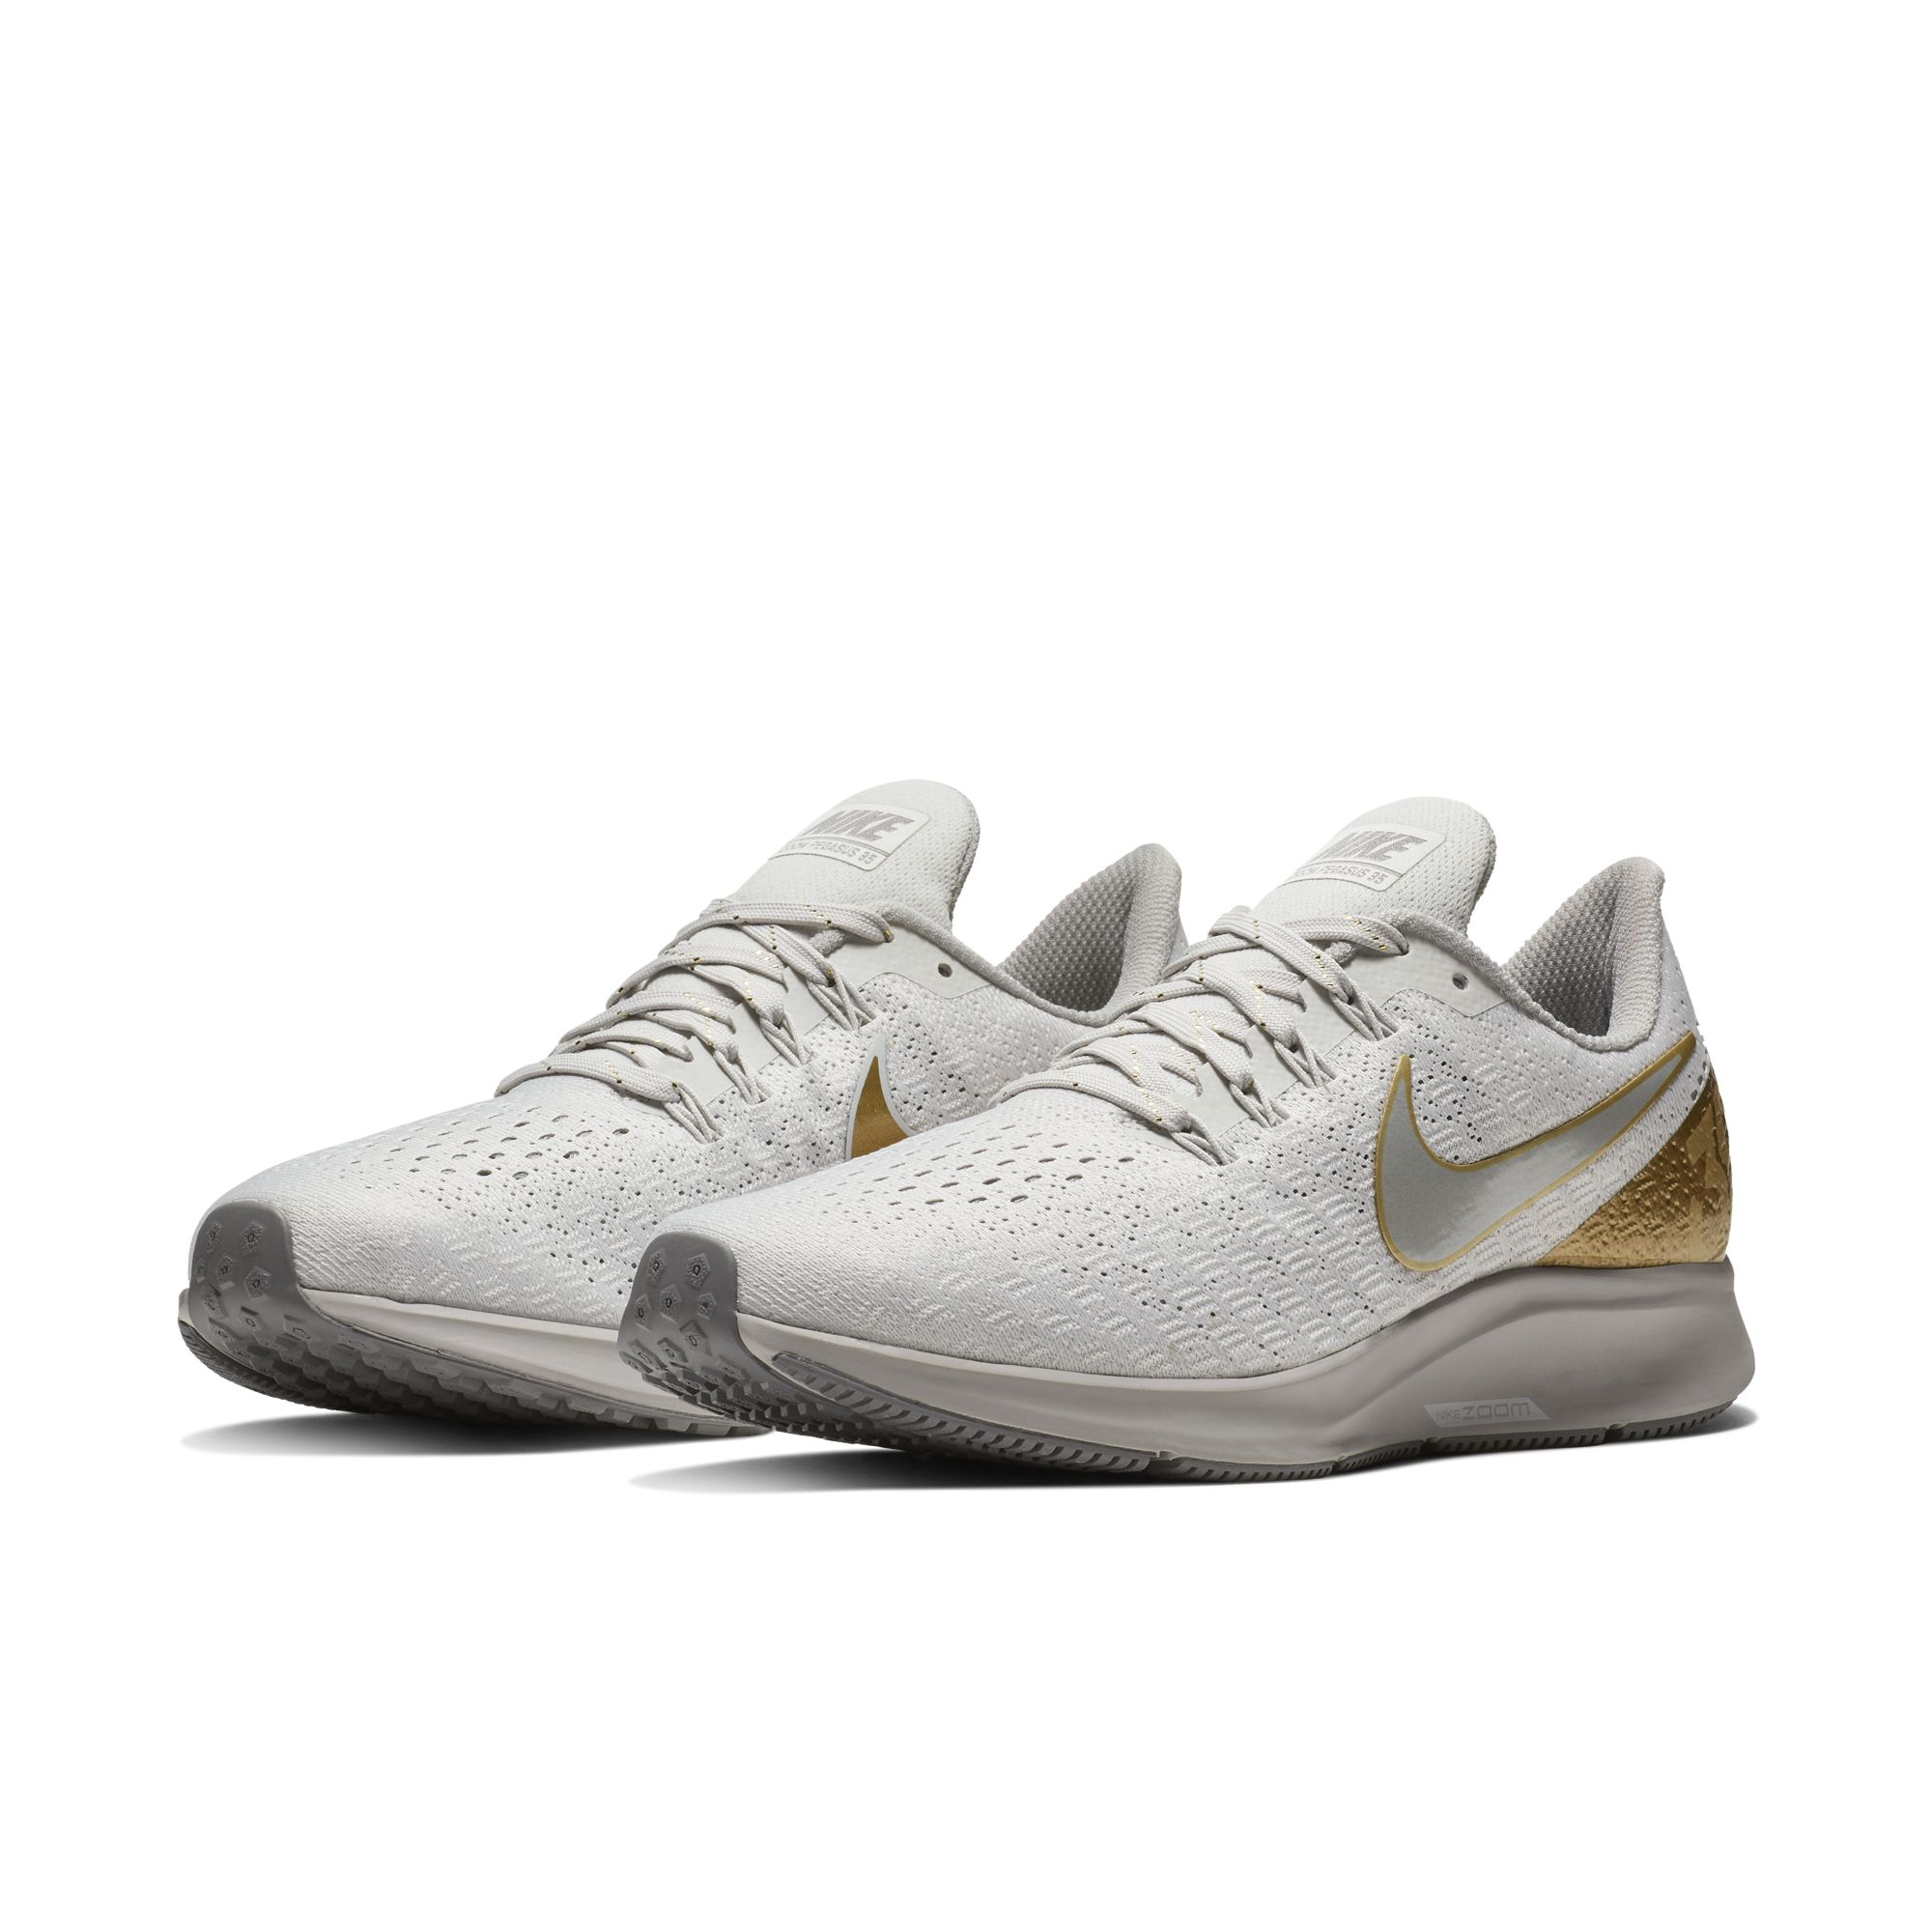 superior quality d7b35 57725 NIKE WMNS AIR ZOOM PEGASUS 35 PRM VAST GREY:MTLC PLATINUM ...